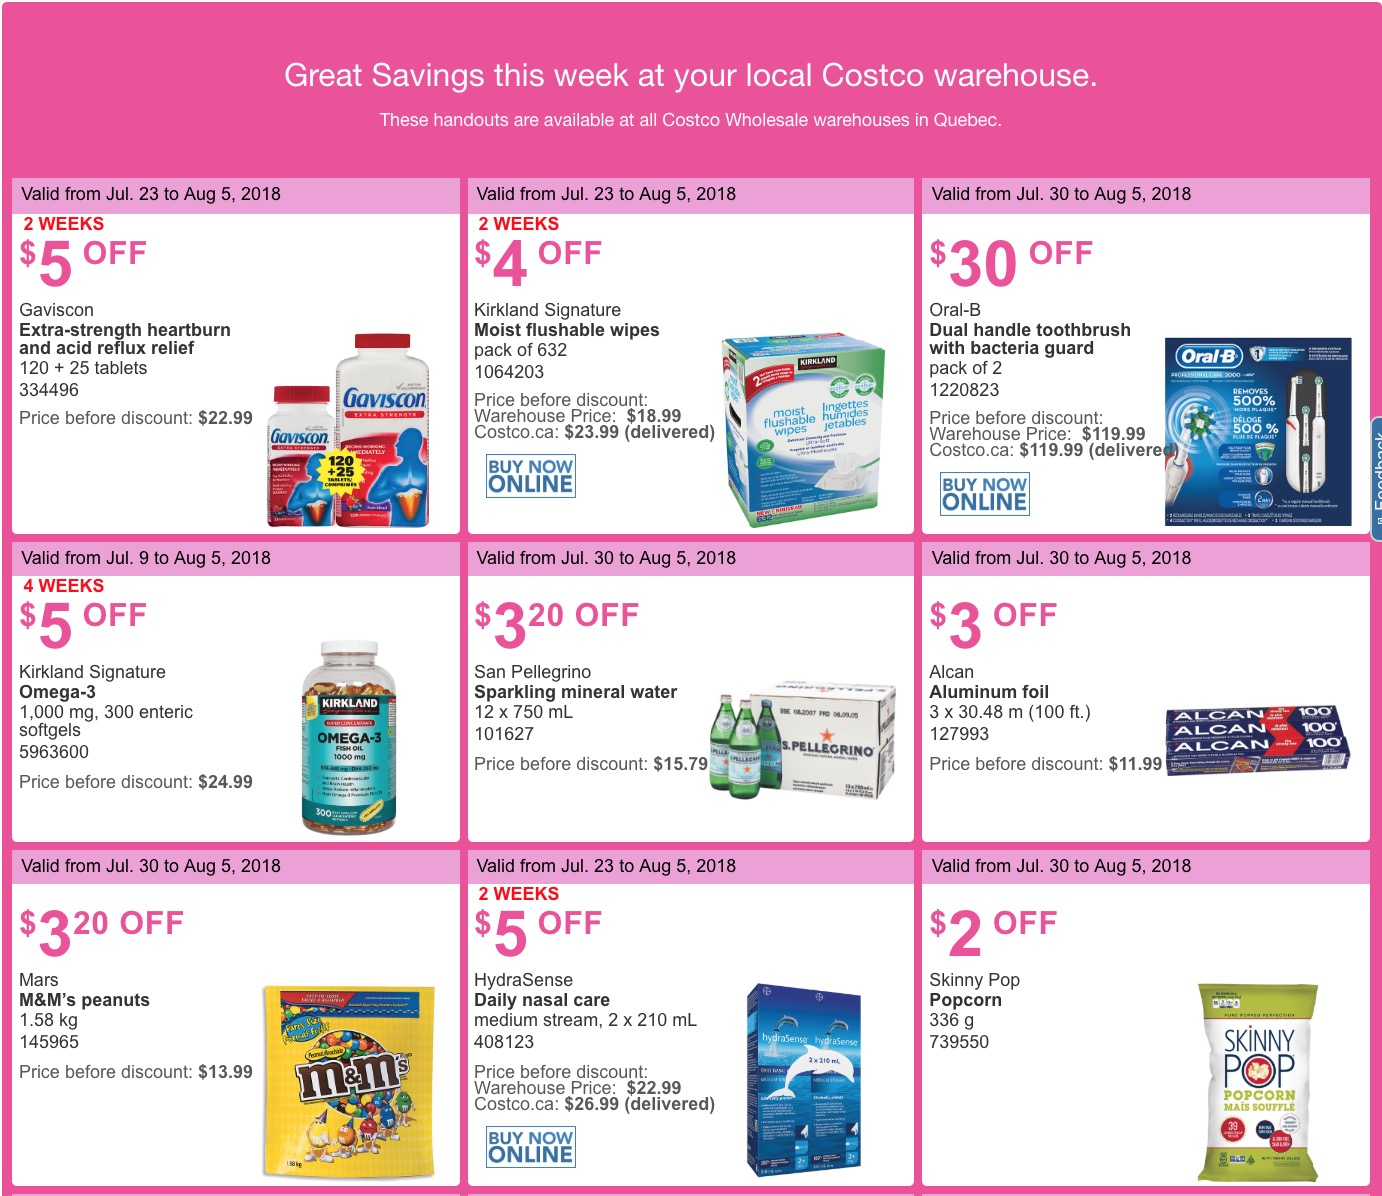 Costco Canada Weekly Summer Savings Coupons/Flyers for